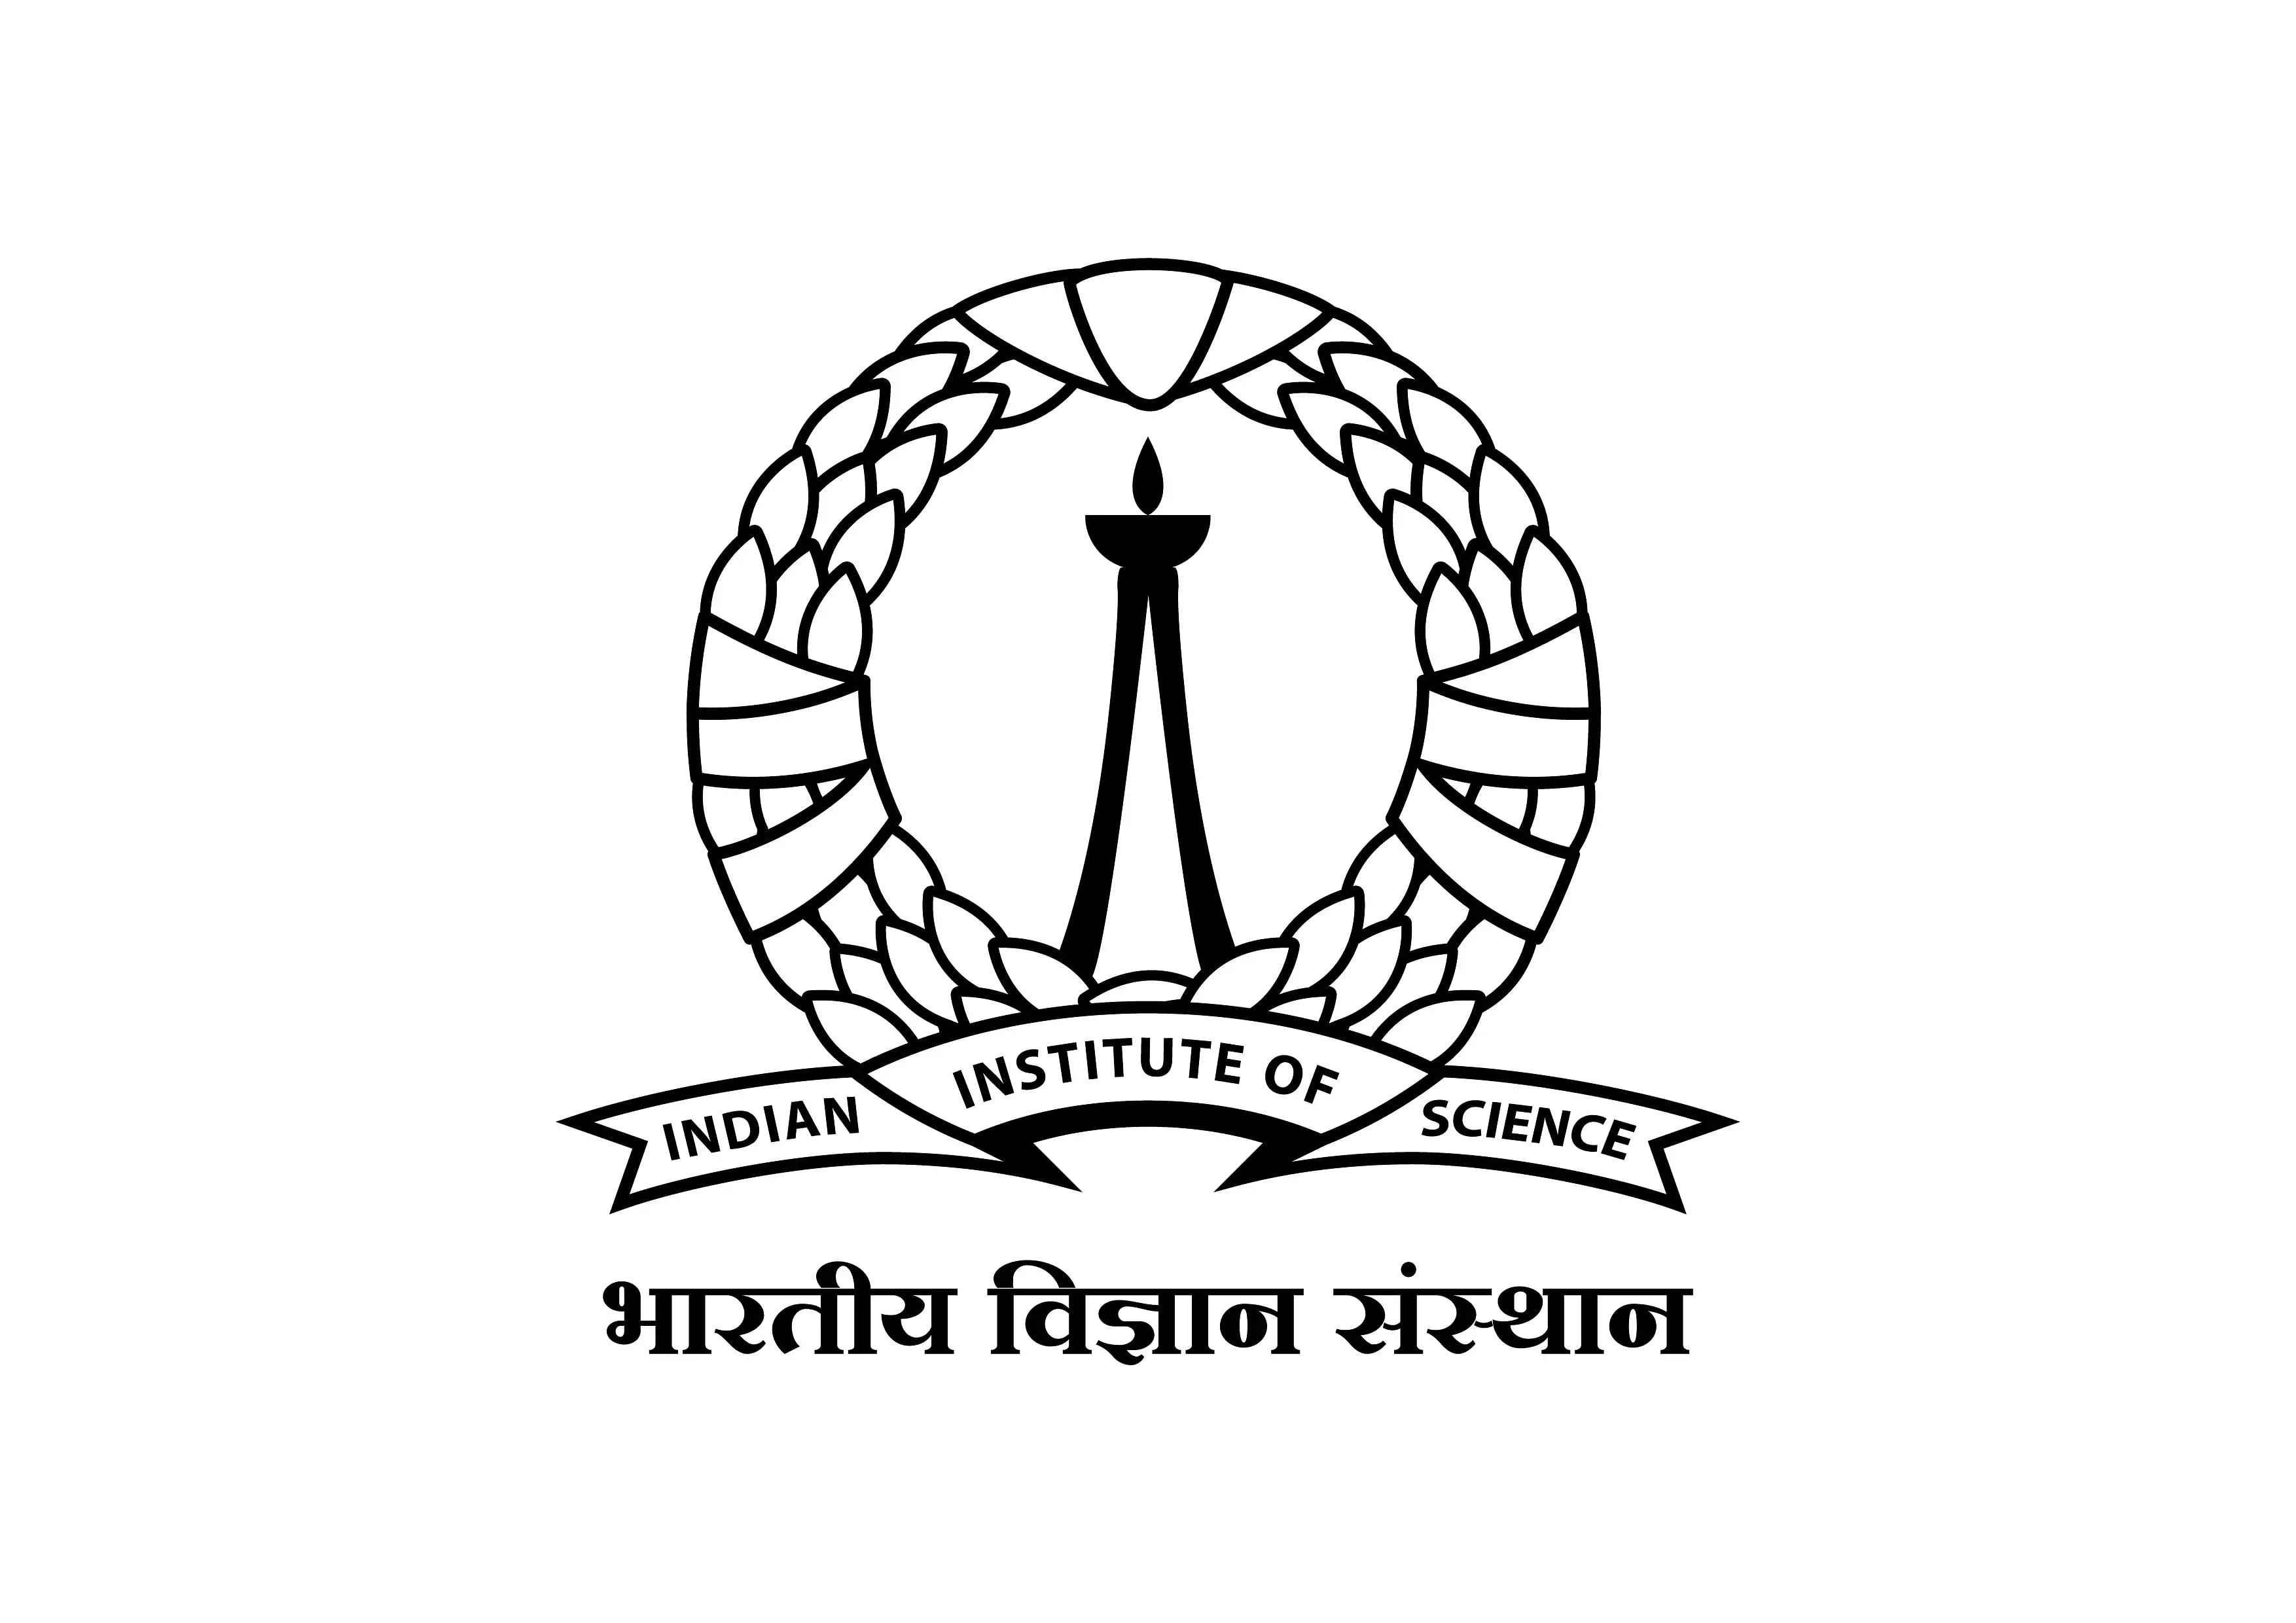 Indian Institute of Science, Bangalore invites application for the post of Administrative Assistant